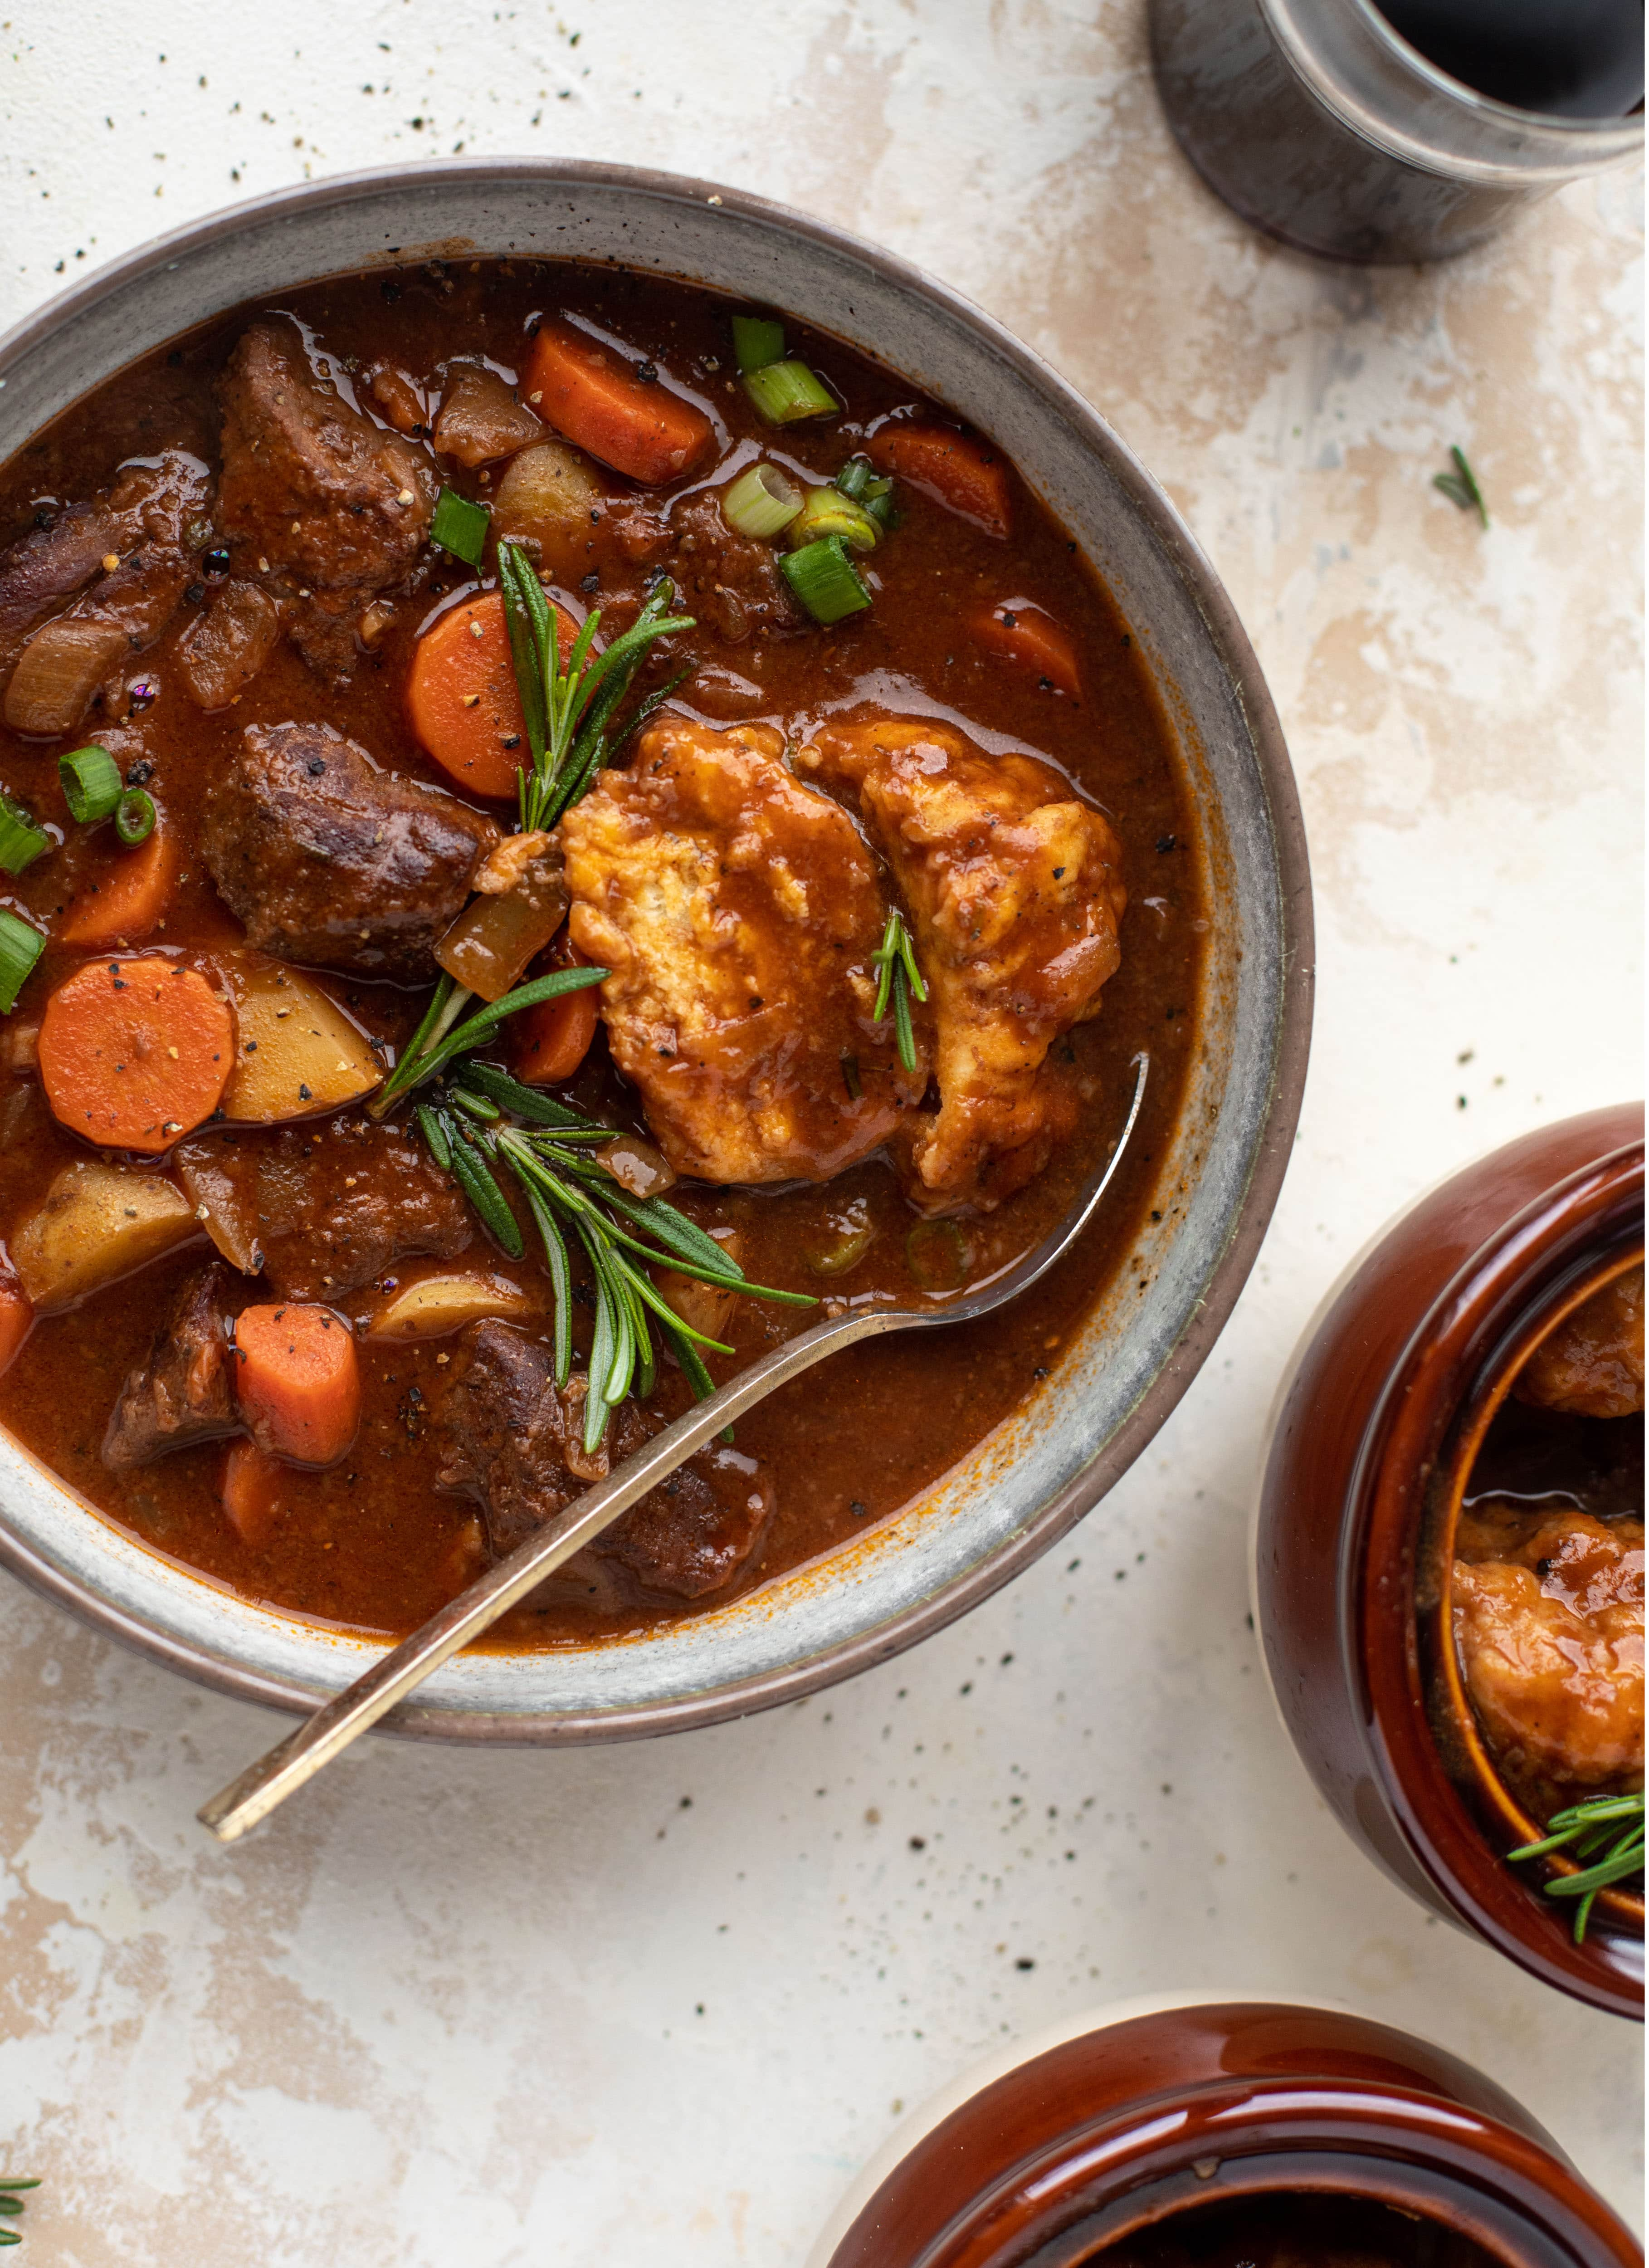 My new favorite soup! Irish stout beef stew is flavorful and hearty and topped with delicious herb dumplings. Perfect comfort food.